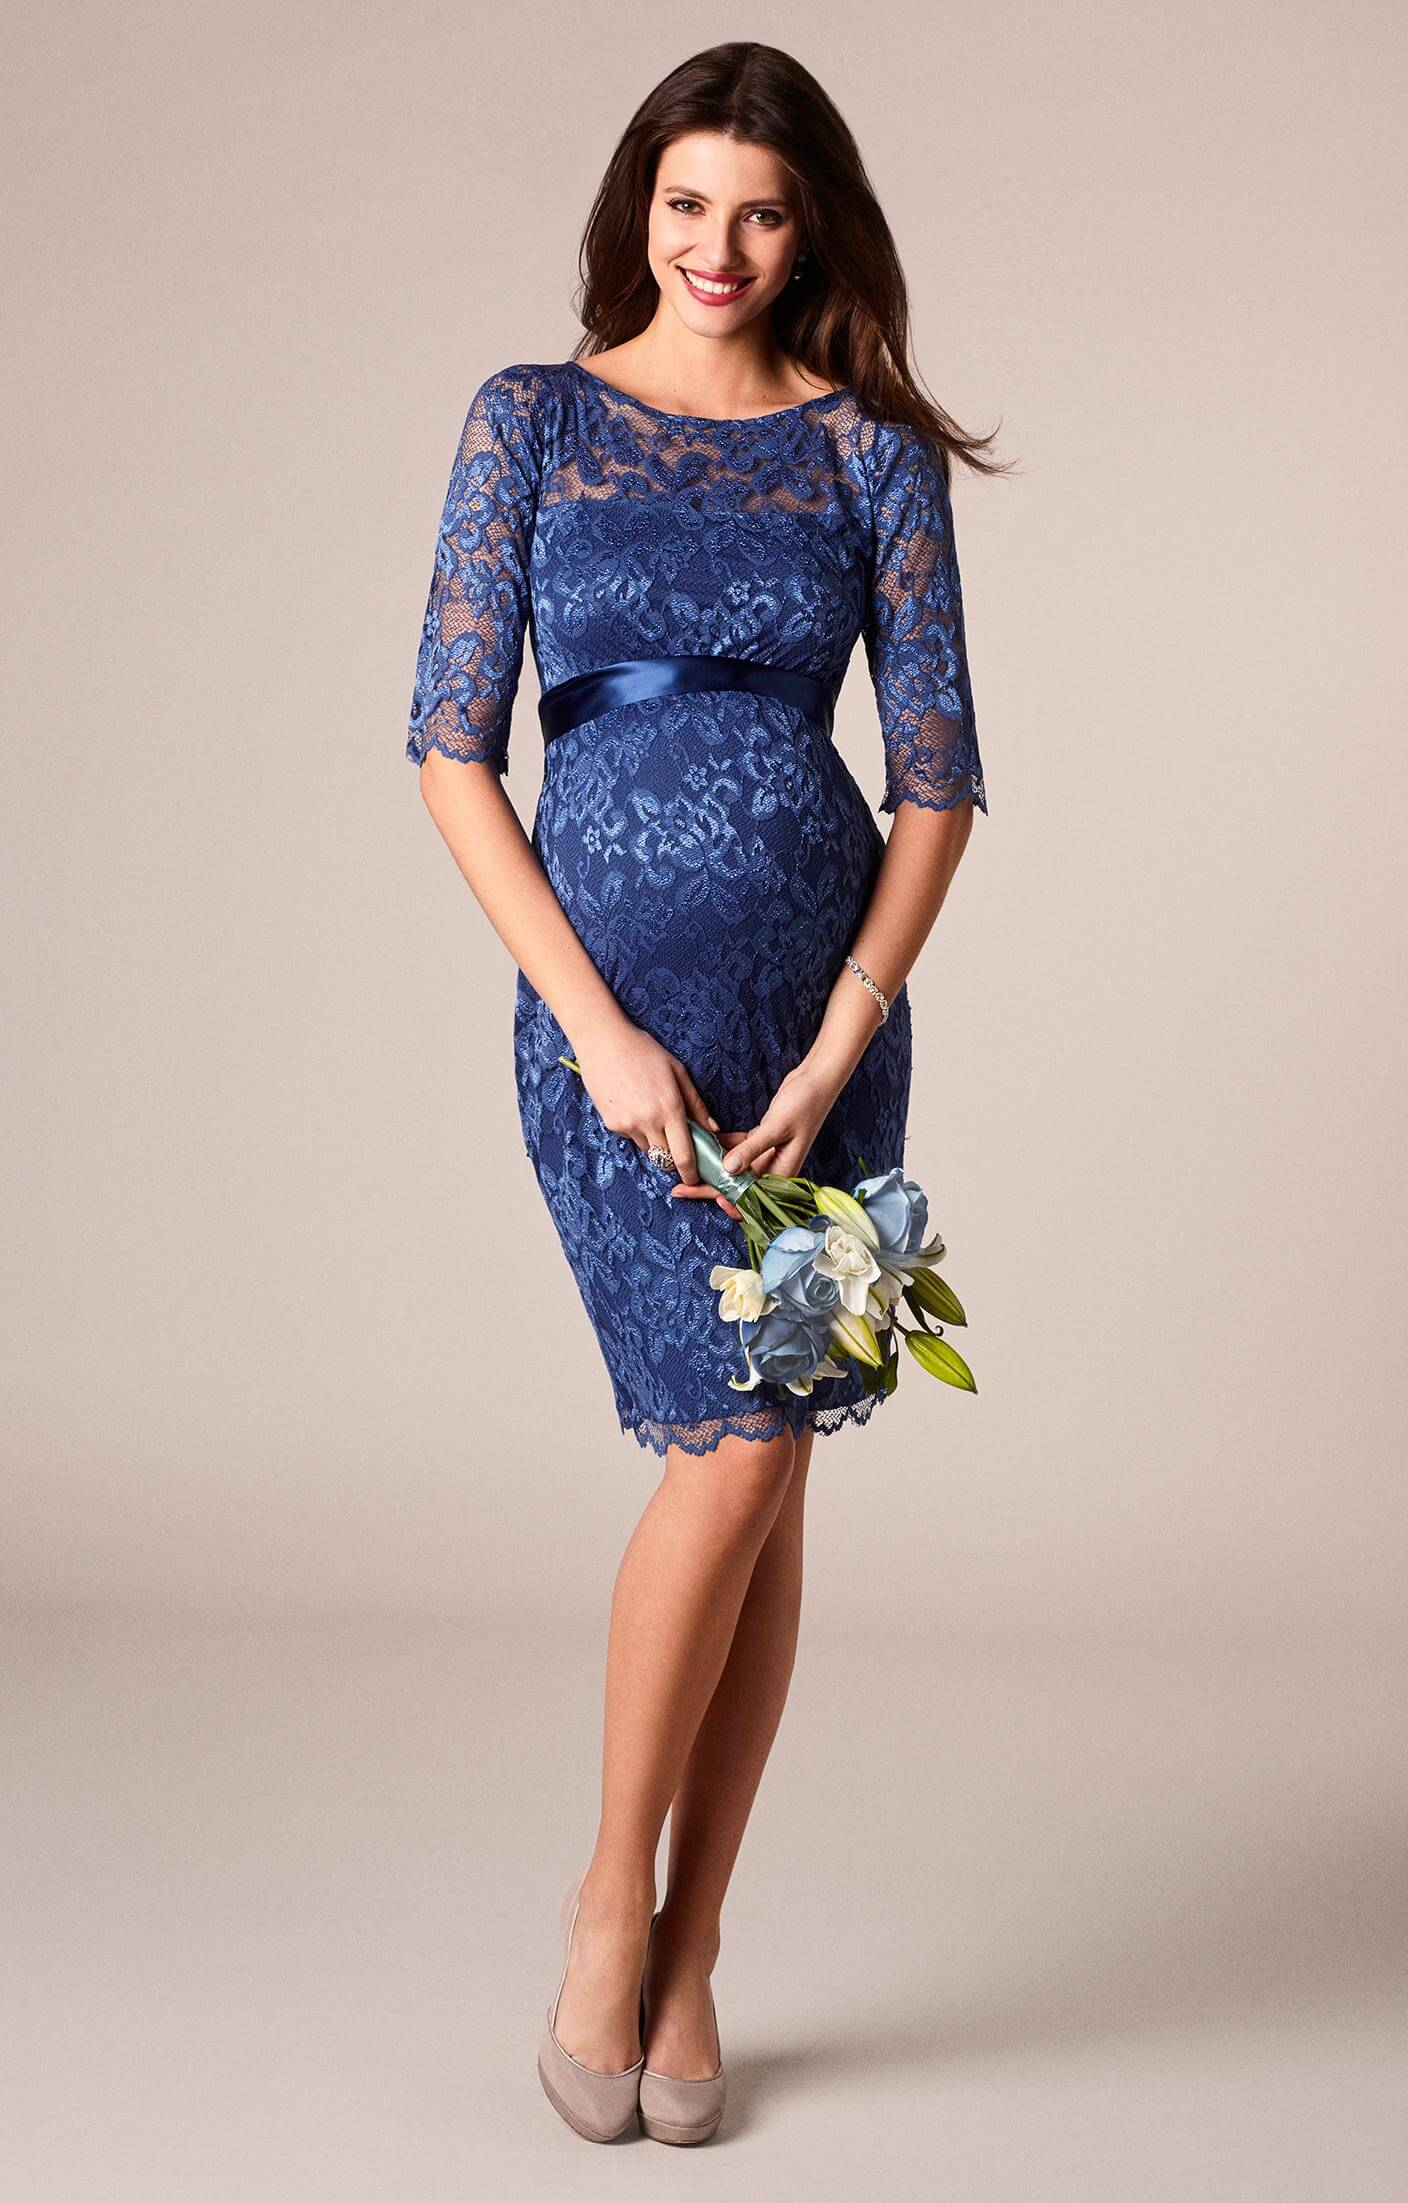 Cocktail maternity dresses long dresses online cocktail maternity dresses 77 ombrellifo Choice Image